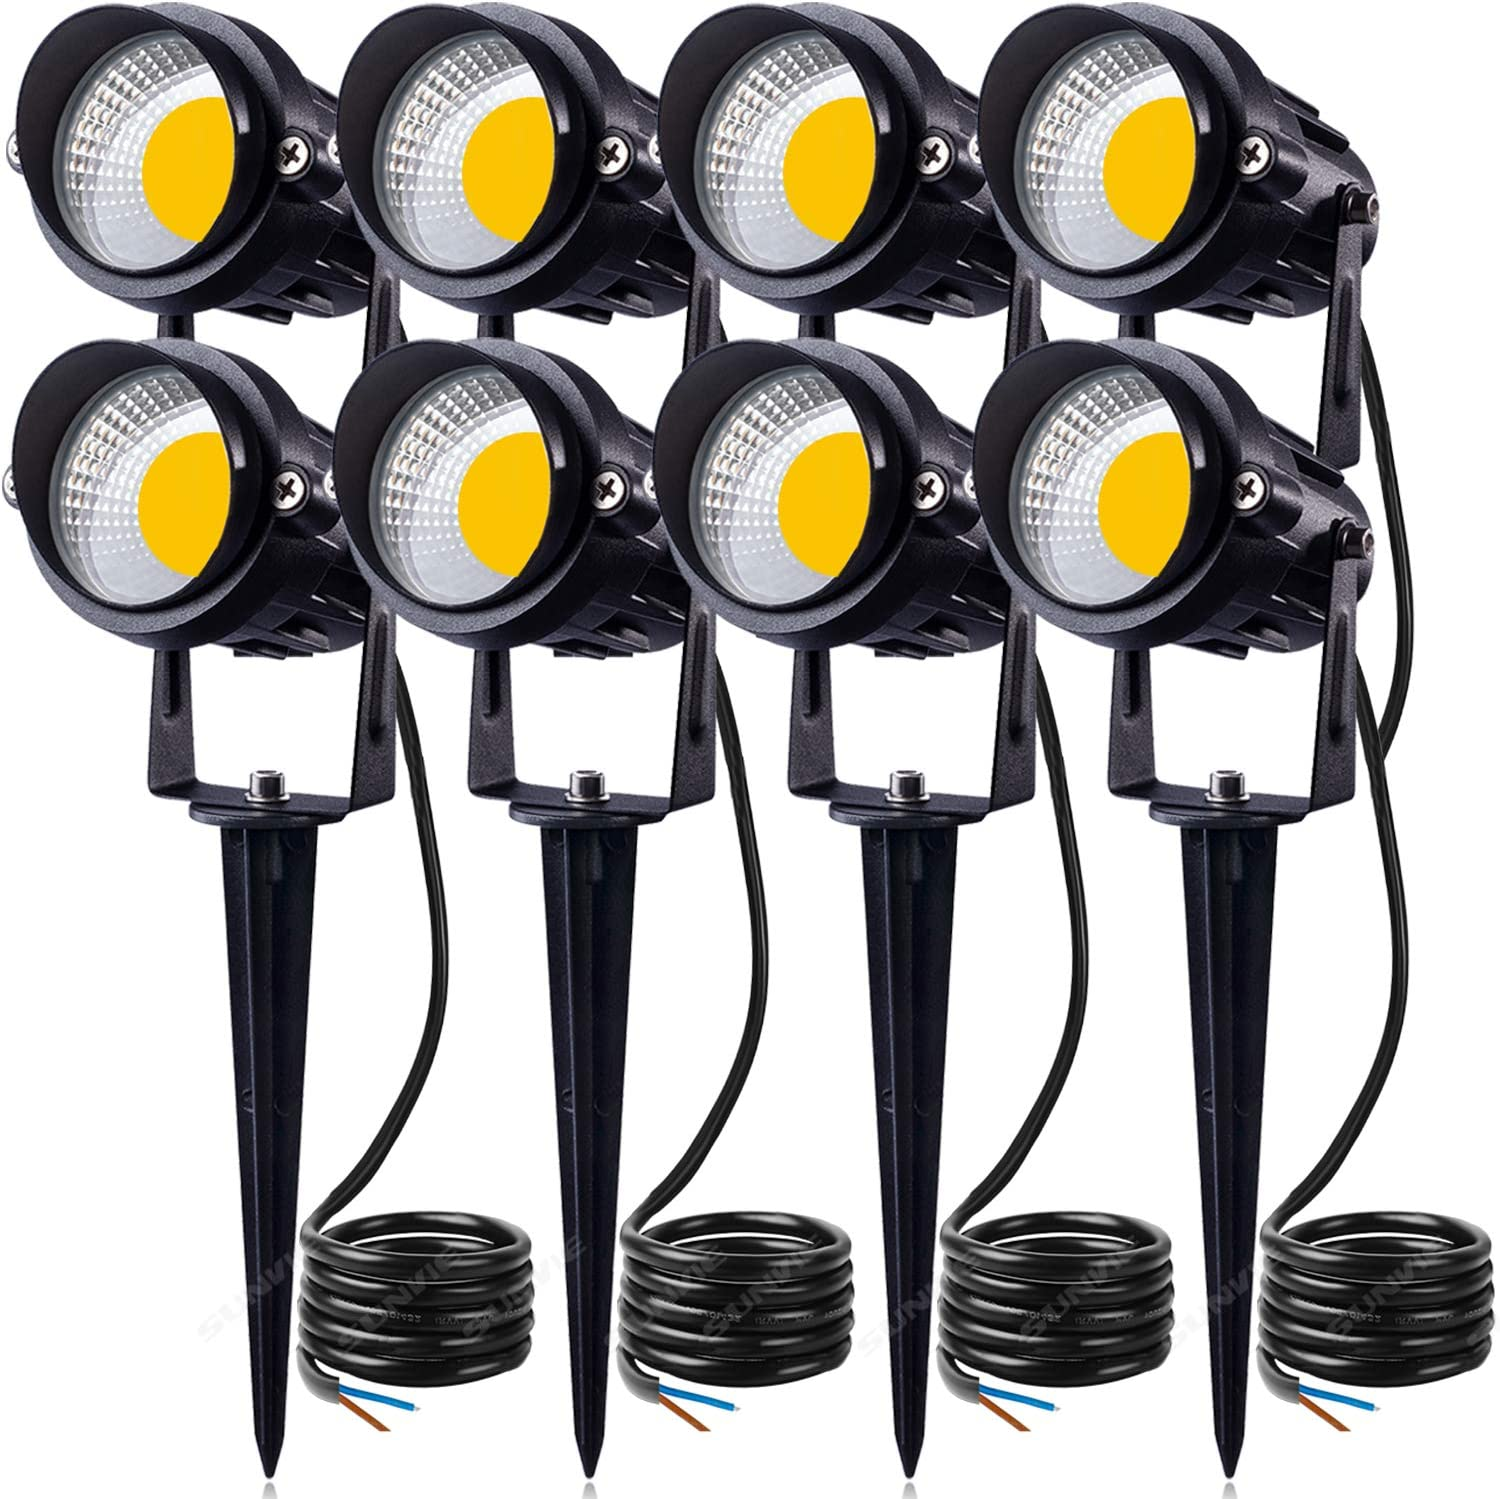 Sunvie 12w Led Landscape Low Voltage Ac Dc 12v Waterproof Garden Pathway Lights Super Warm White 900lm Walls Trees Flags Outdoor Spotlights With Spike Stand 8 Pack Amazon Ca Patio Lawn Garden